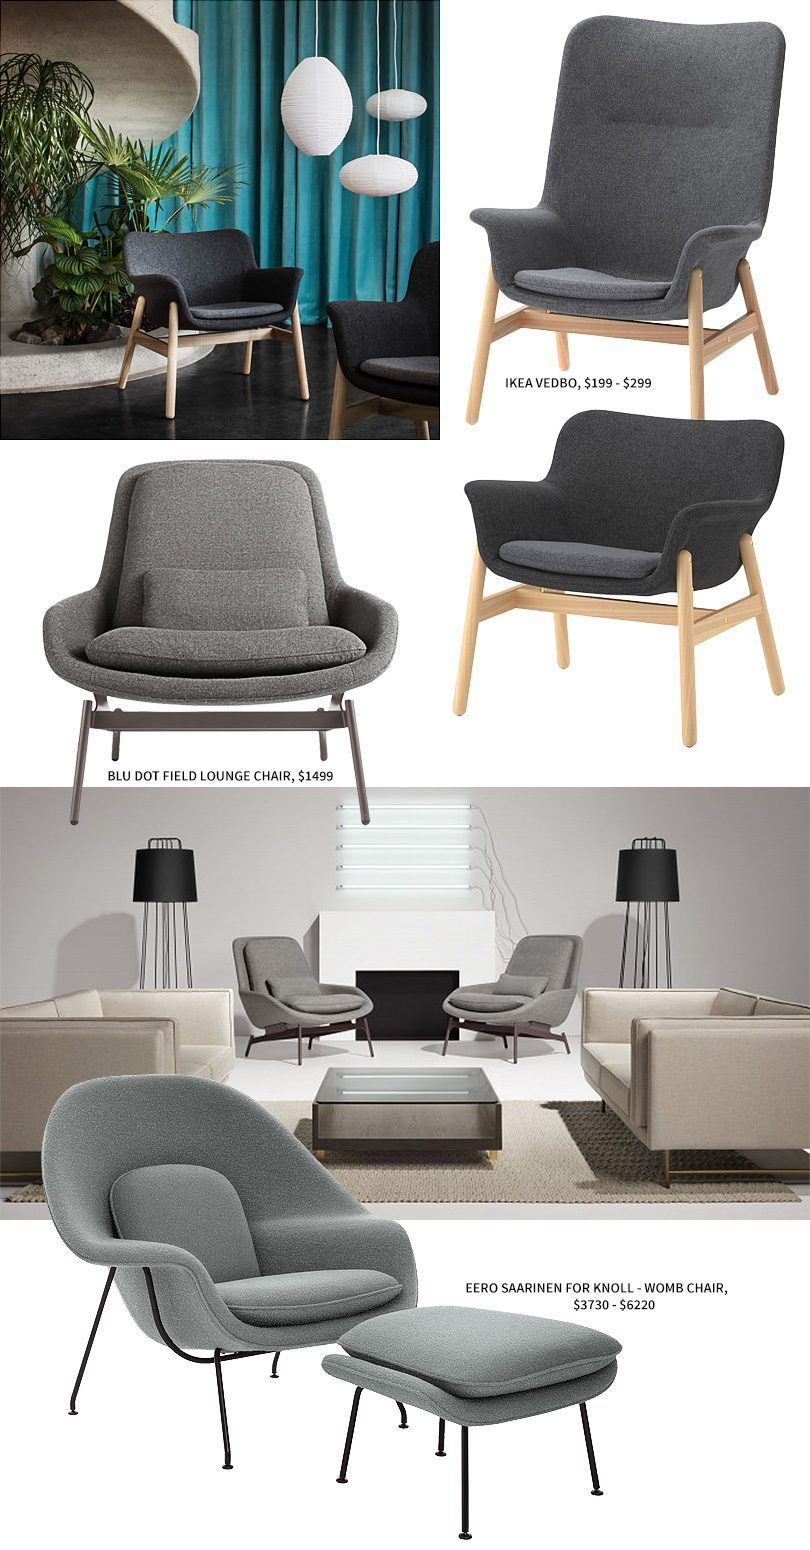 Ikea Relaxstuhl Ikea Vedbo Vs Blu Dot Field Lounge Chair Vs Eero Saarinen Womb